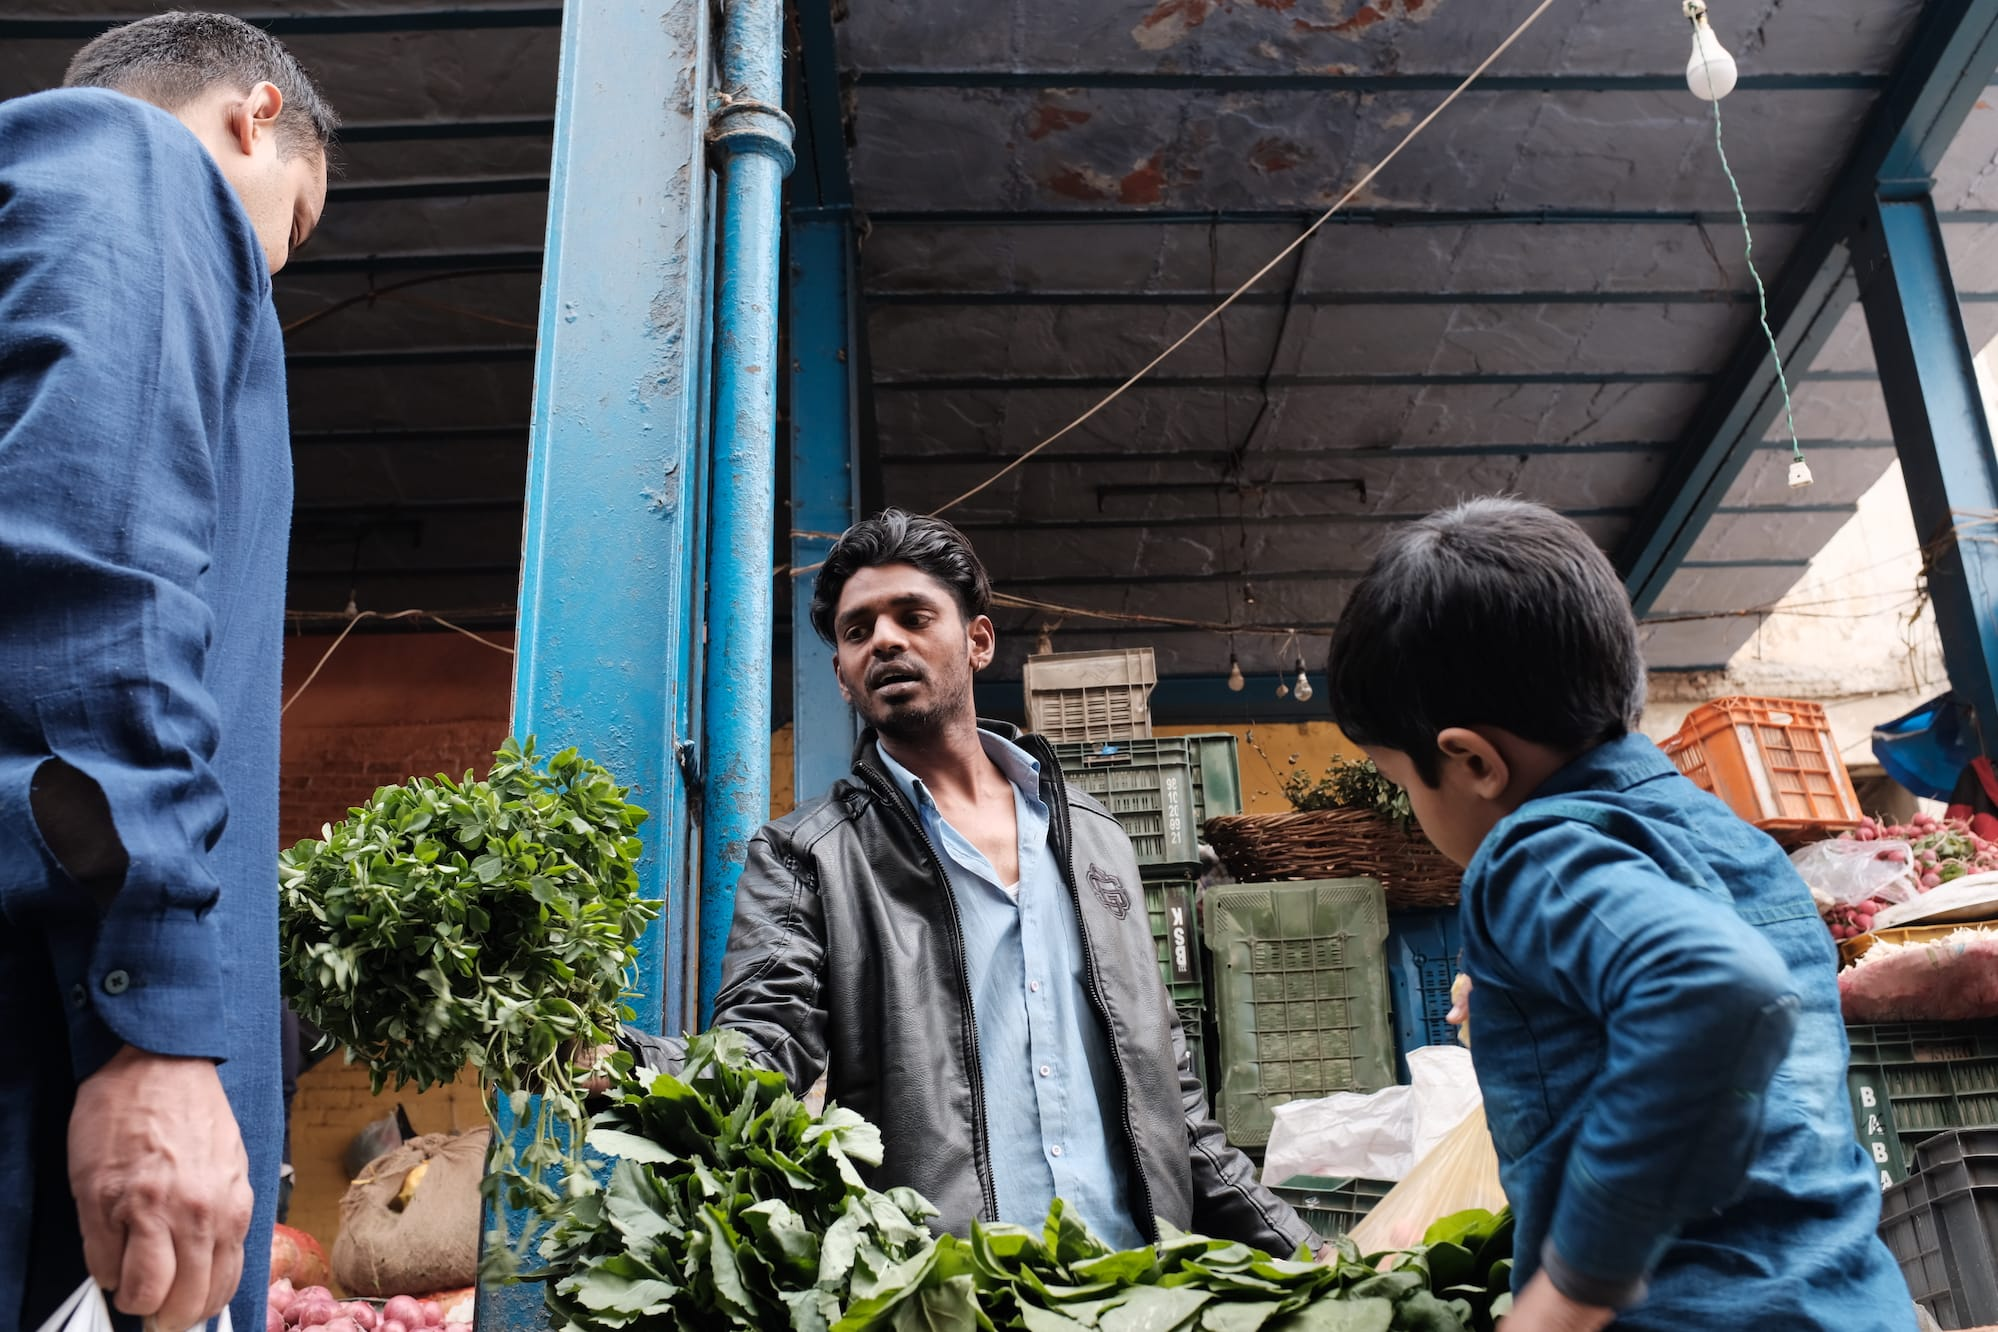 A Man Buying Vegetables with His Son, Delhi, India